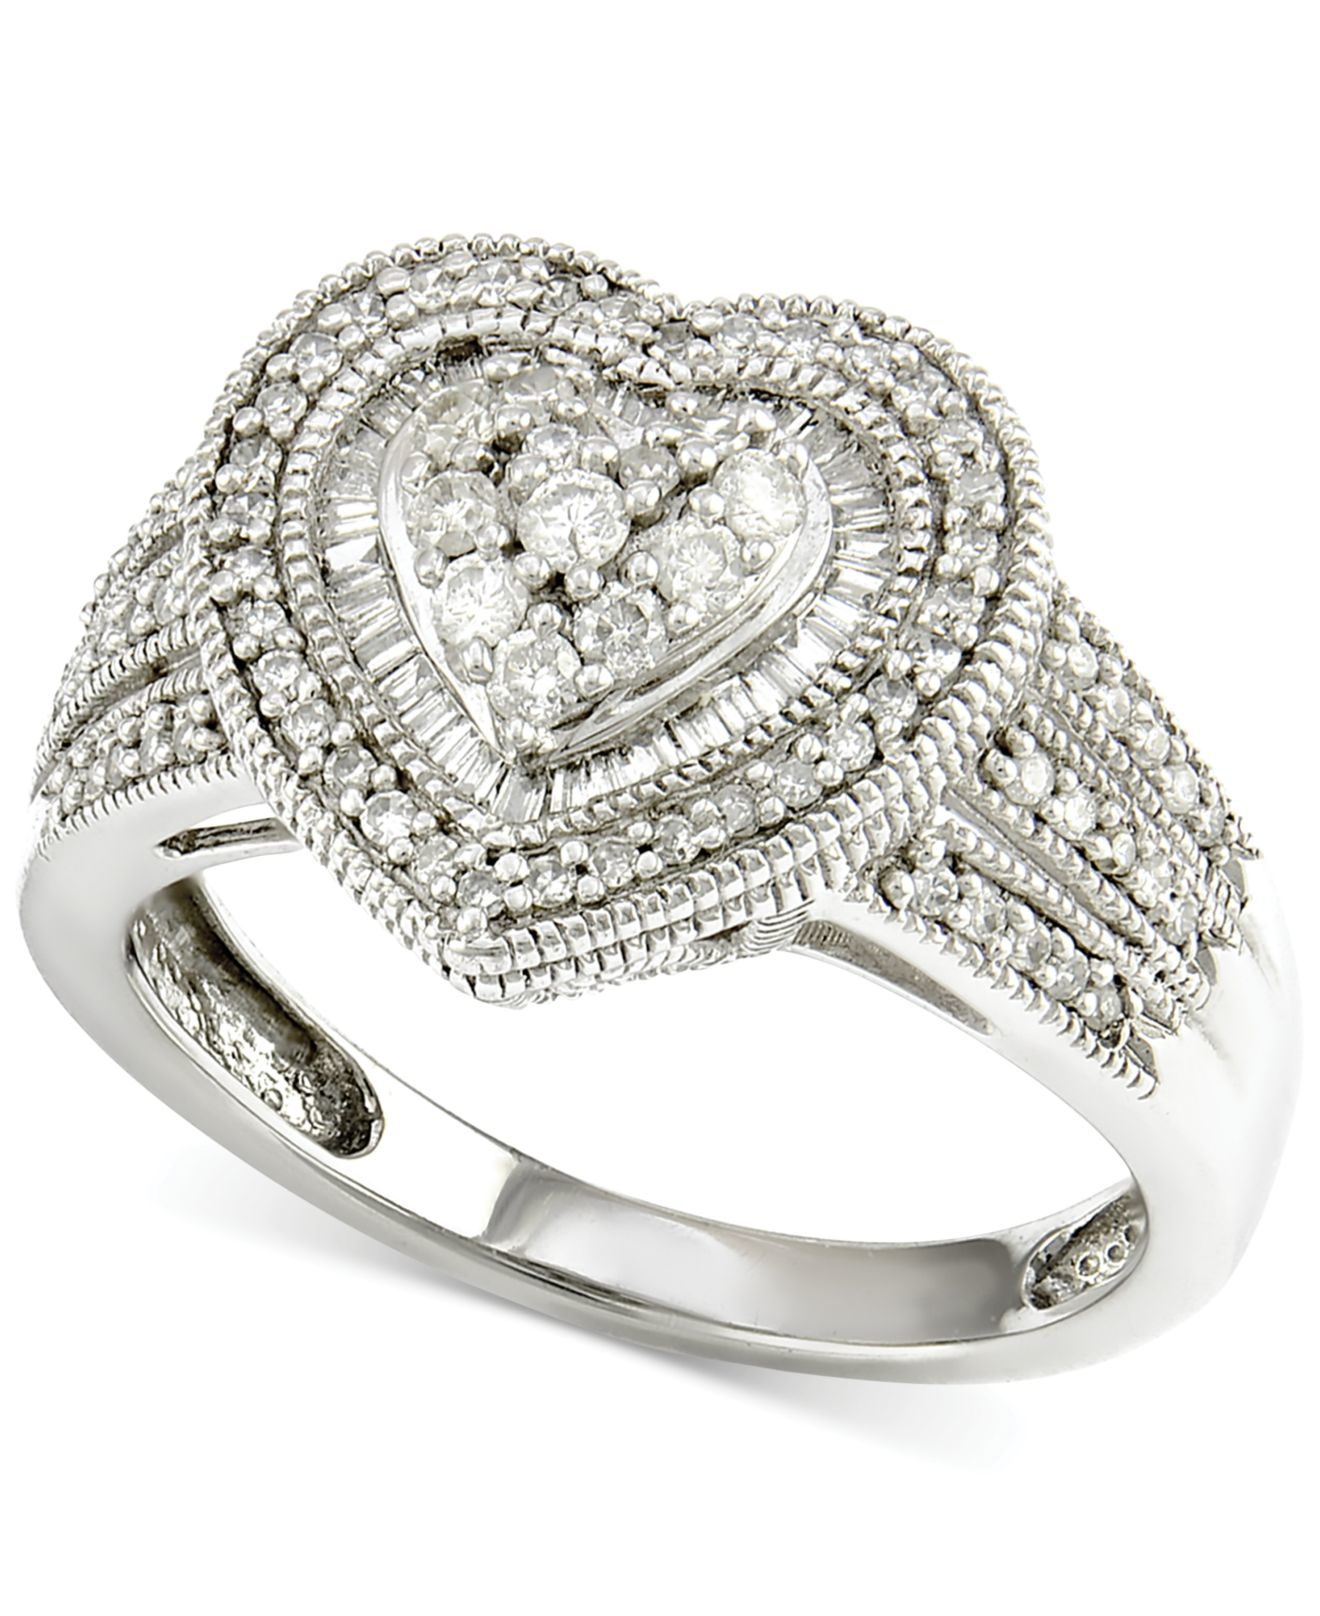 Macy s Diamond Heart Engagement Ring 1 2 Ct T w In 14k White Gold in